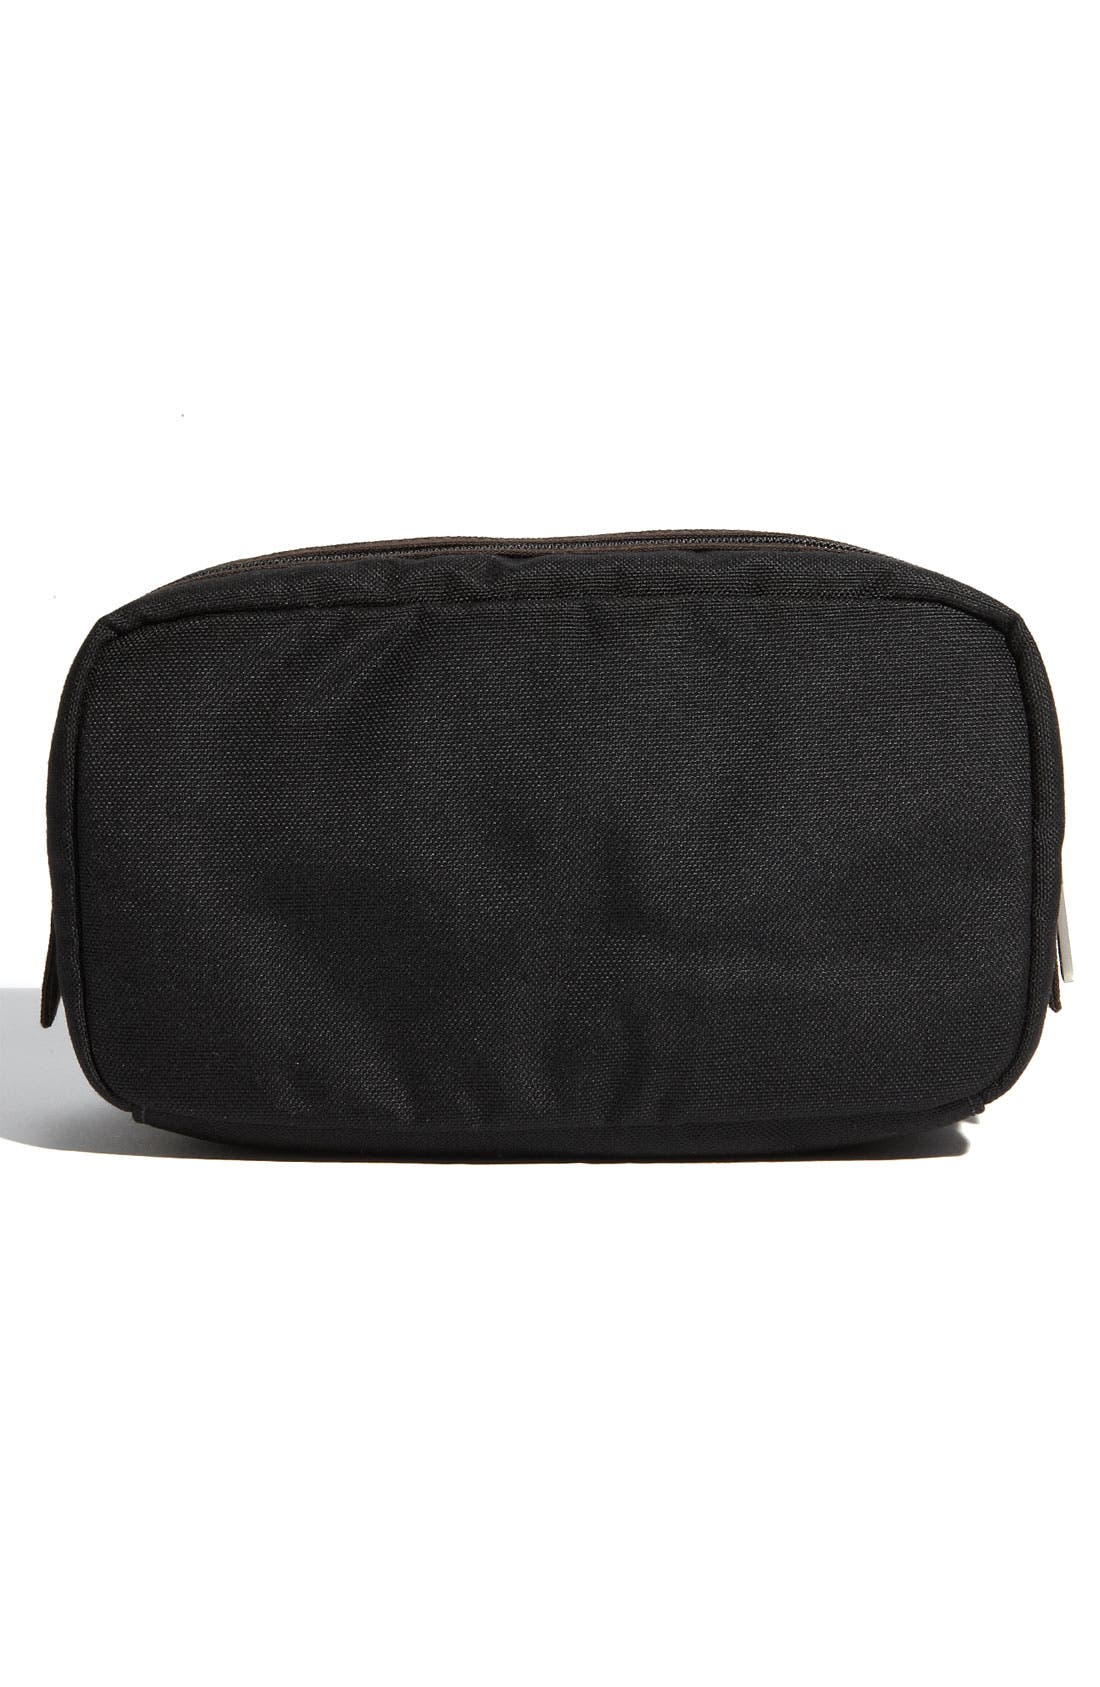 'Trad' Nylon Canvas Toiletry Bag,                             Alternate thumbnail 4, color,                             001